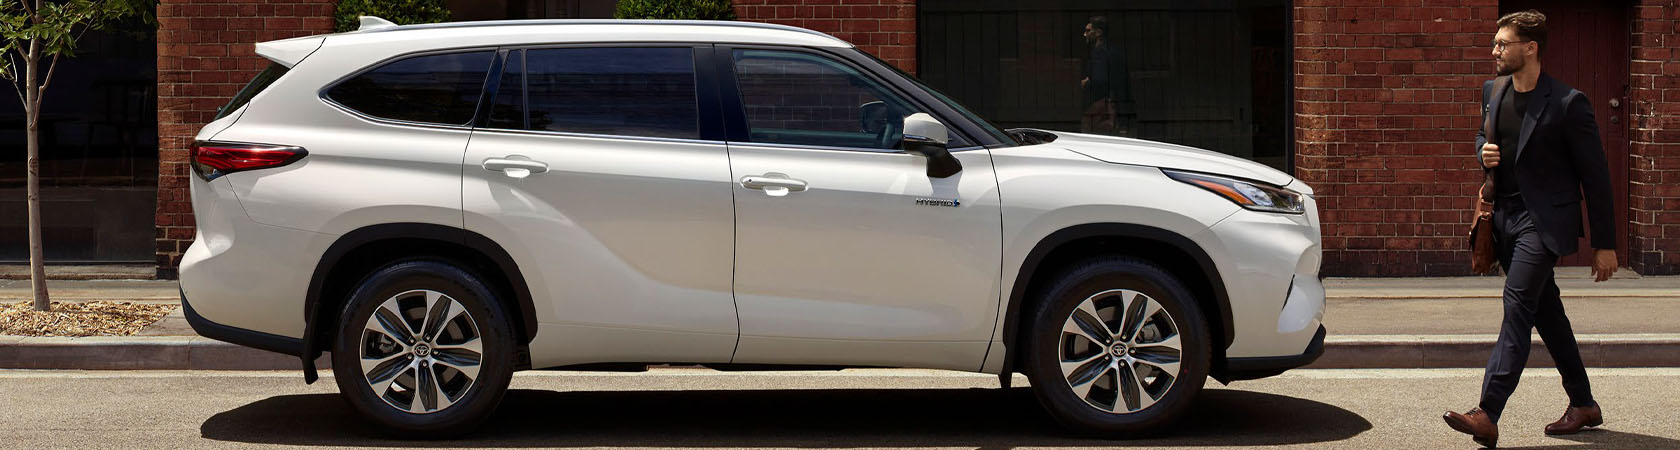 Grand Motors Toyota Kluger